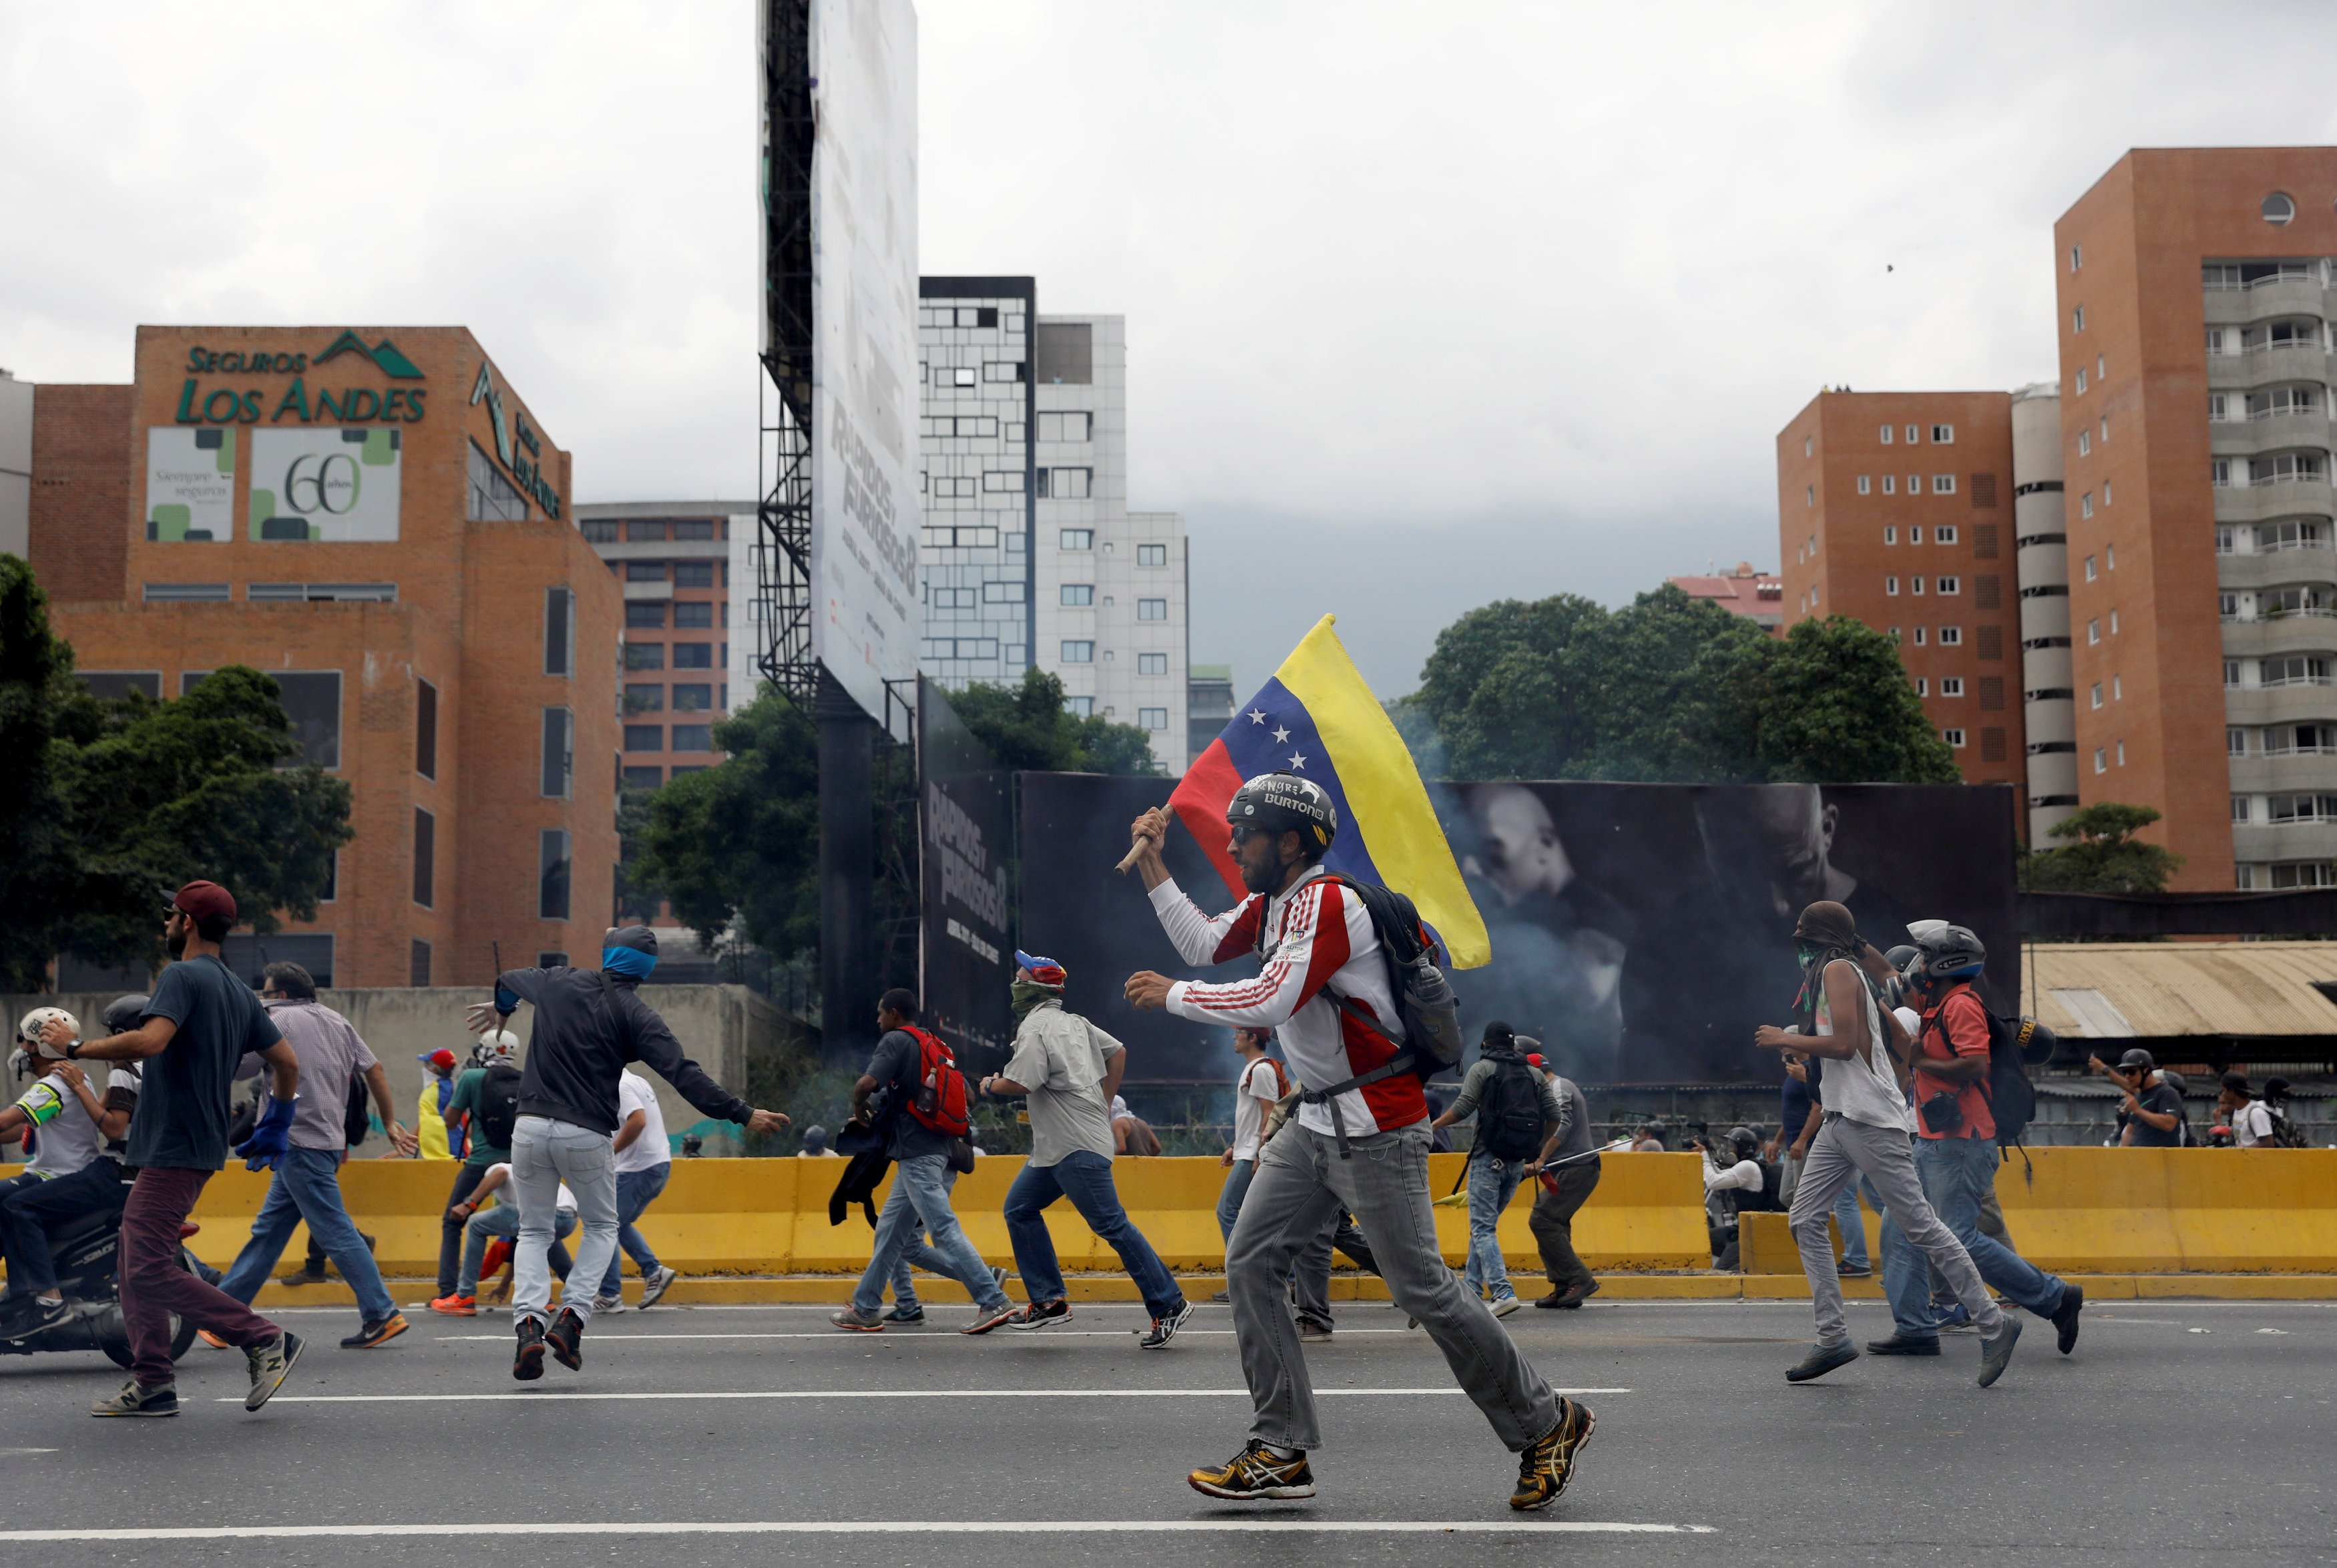 Opposition supporters rally against Venezuela's President Nicolas Maduro in Caracas, Venezuela April 20, 2017. REUTERS/Carlos Garcia Rawlins